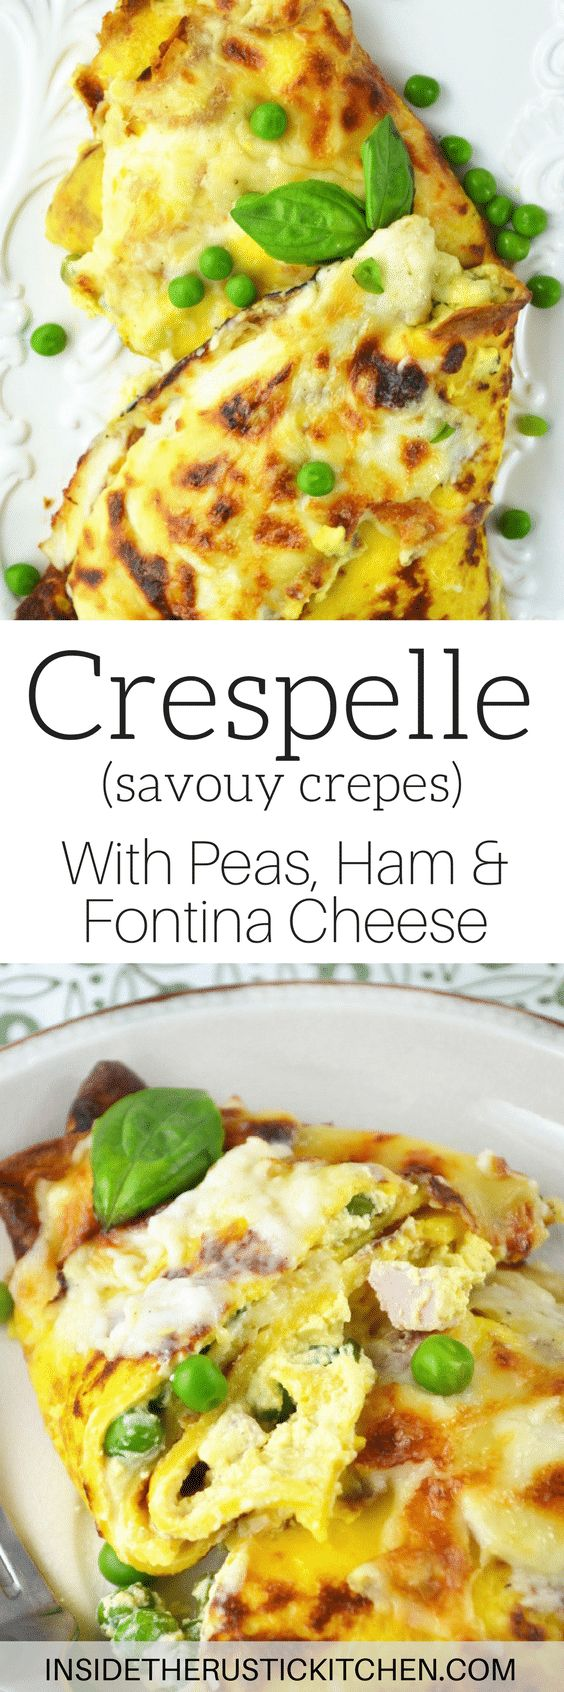 These Crespelle (savoury crepes) are stuffed with ricotta, peas and ham and baked with a delicious Fontina cheese sauce!